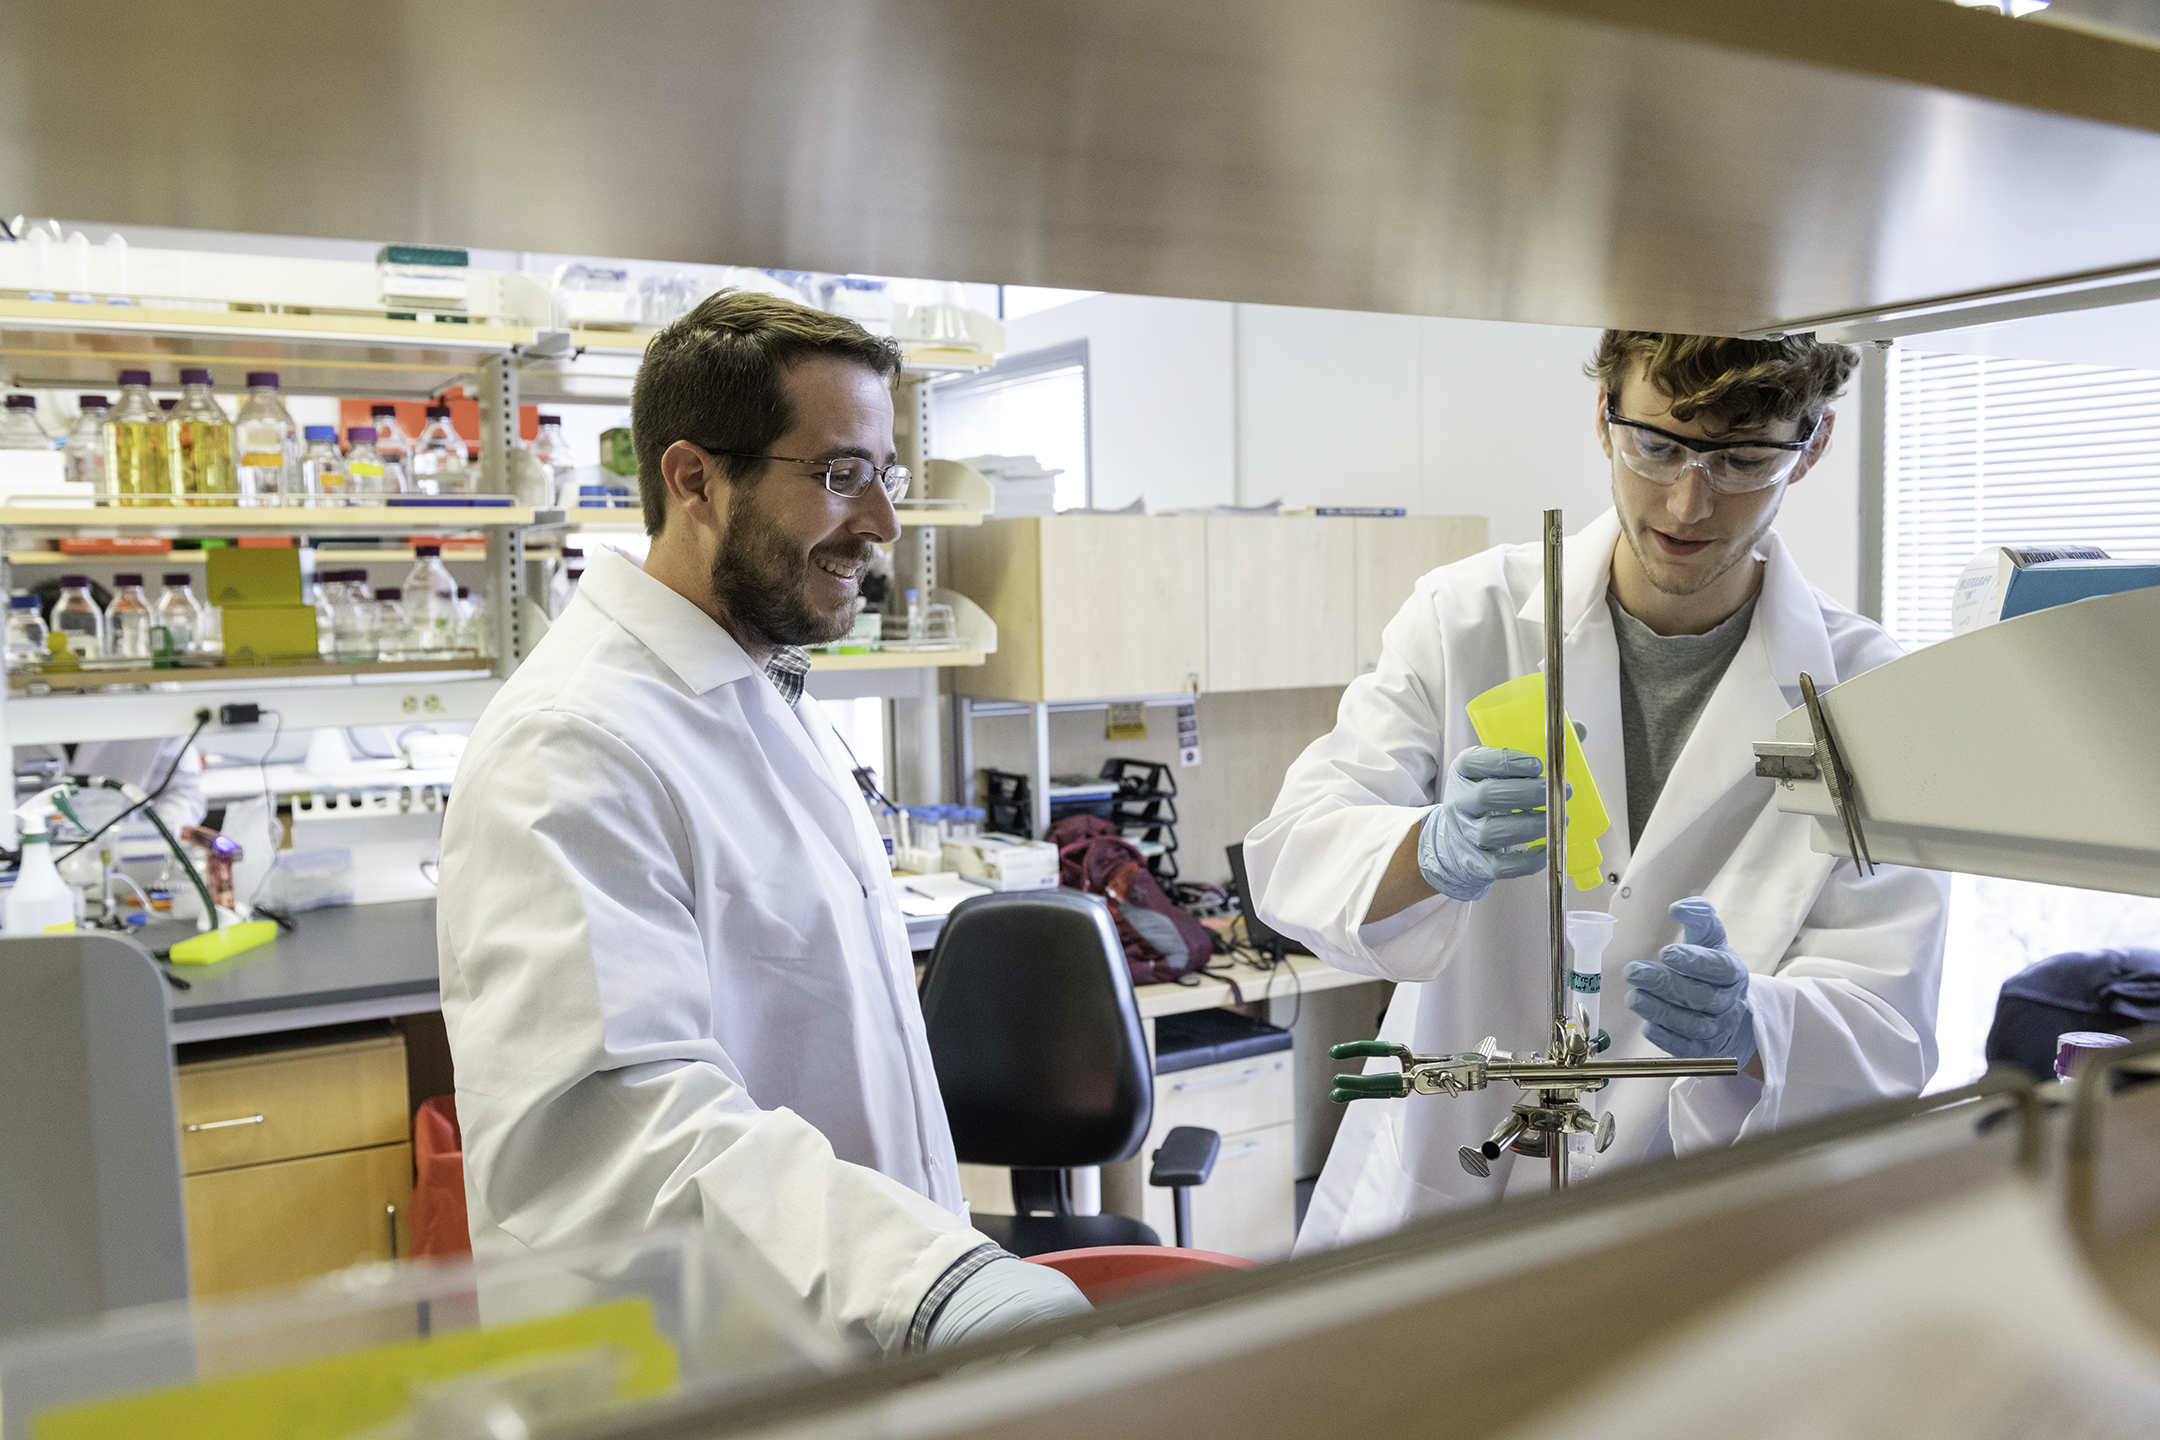 Jason S. McLellan, associate professor of molecular biosciences, left, and a male graduate student Daniel Wrapp, right, work in the McLellan Lab at the University of Texas at Austin